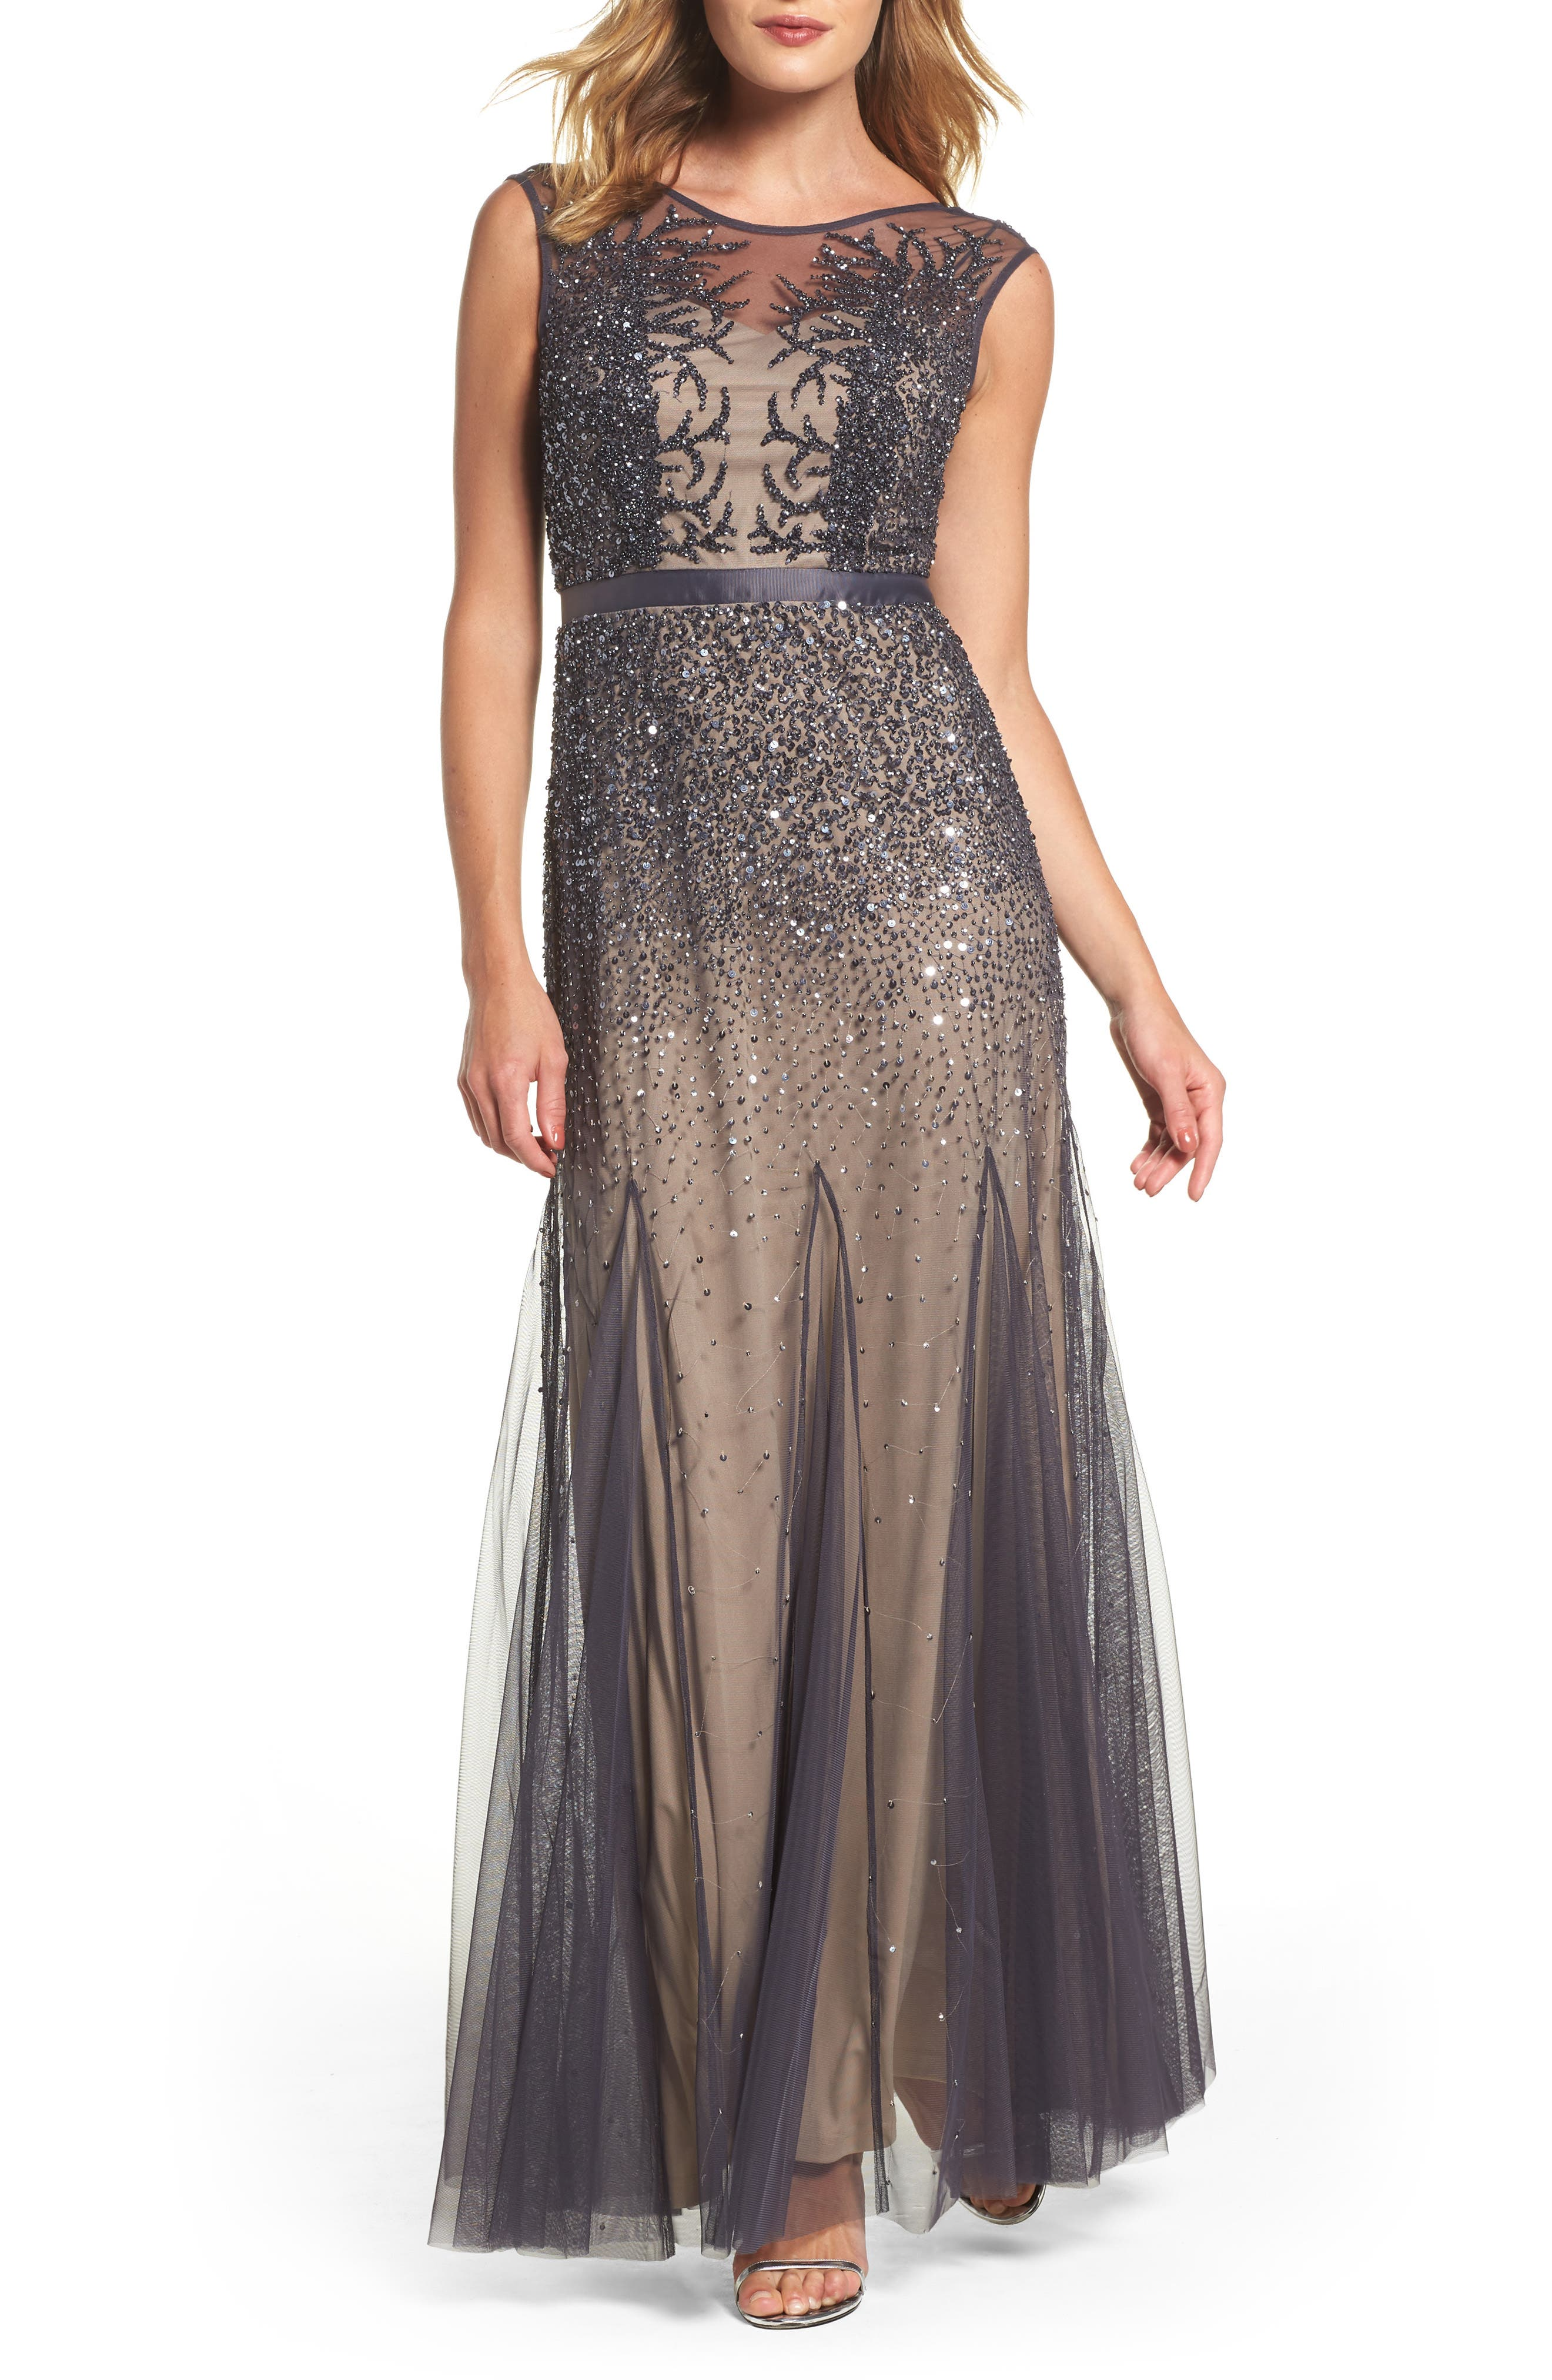 Alternate Image 1 Selected - Adrianna Papell Beaded Chiffon Gown (Regular & Petite)